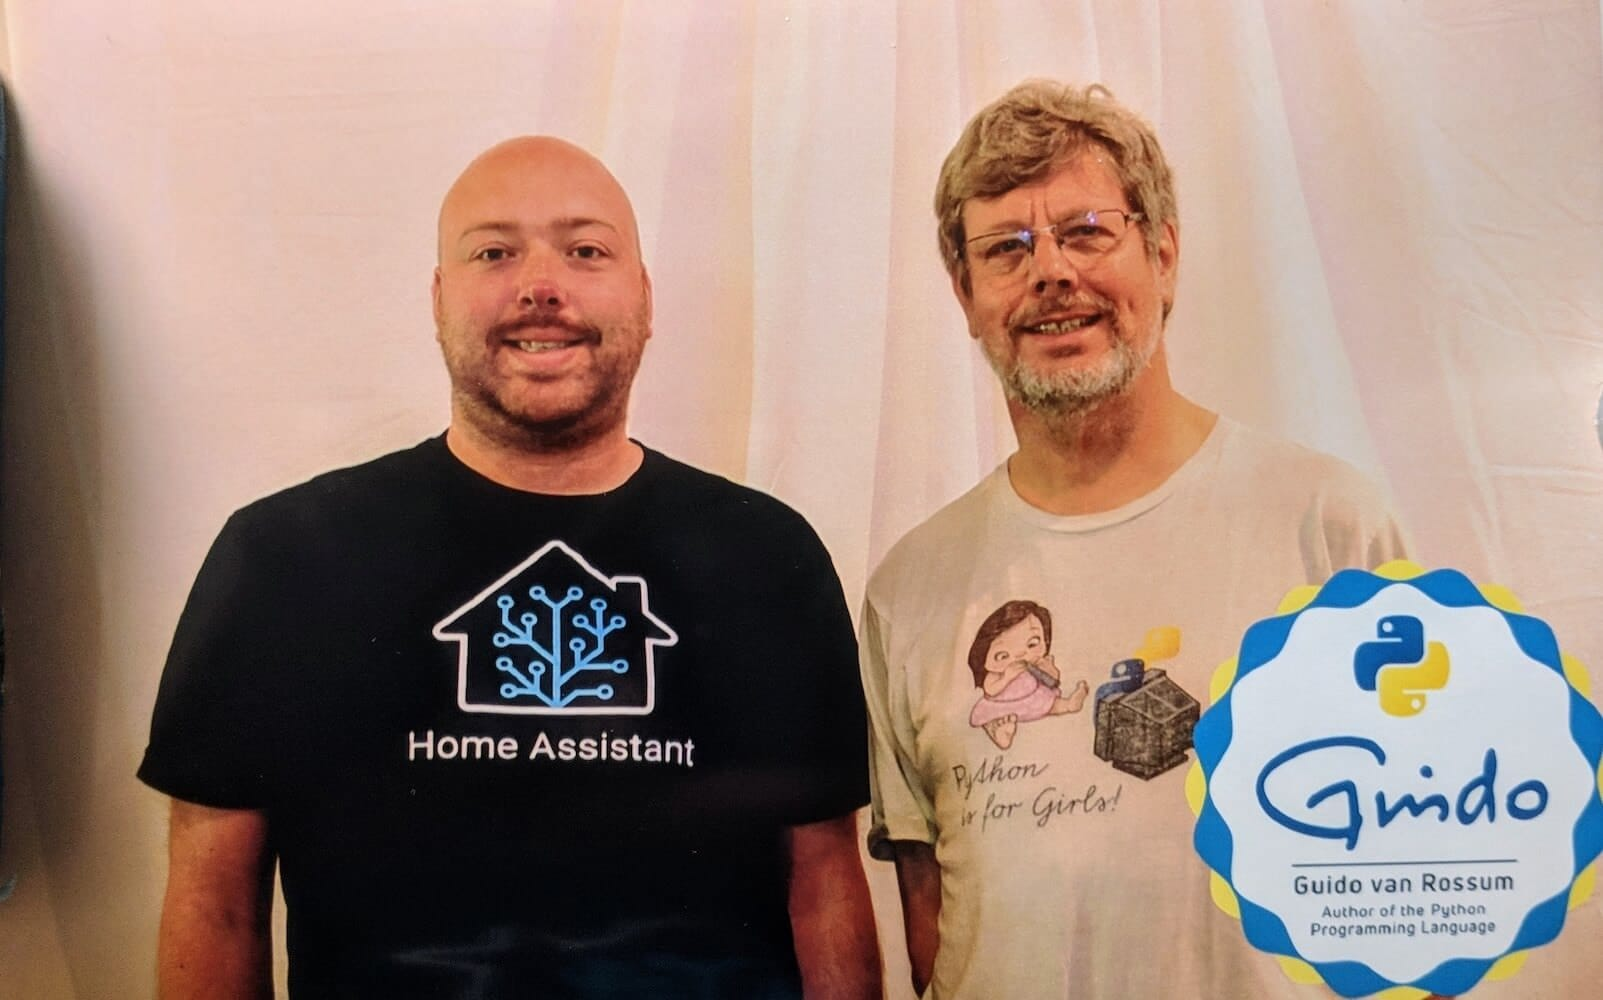 Photo of Paulus, founder of Home Assistant, and Guido, founder of Python.